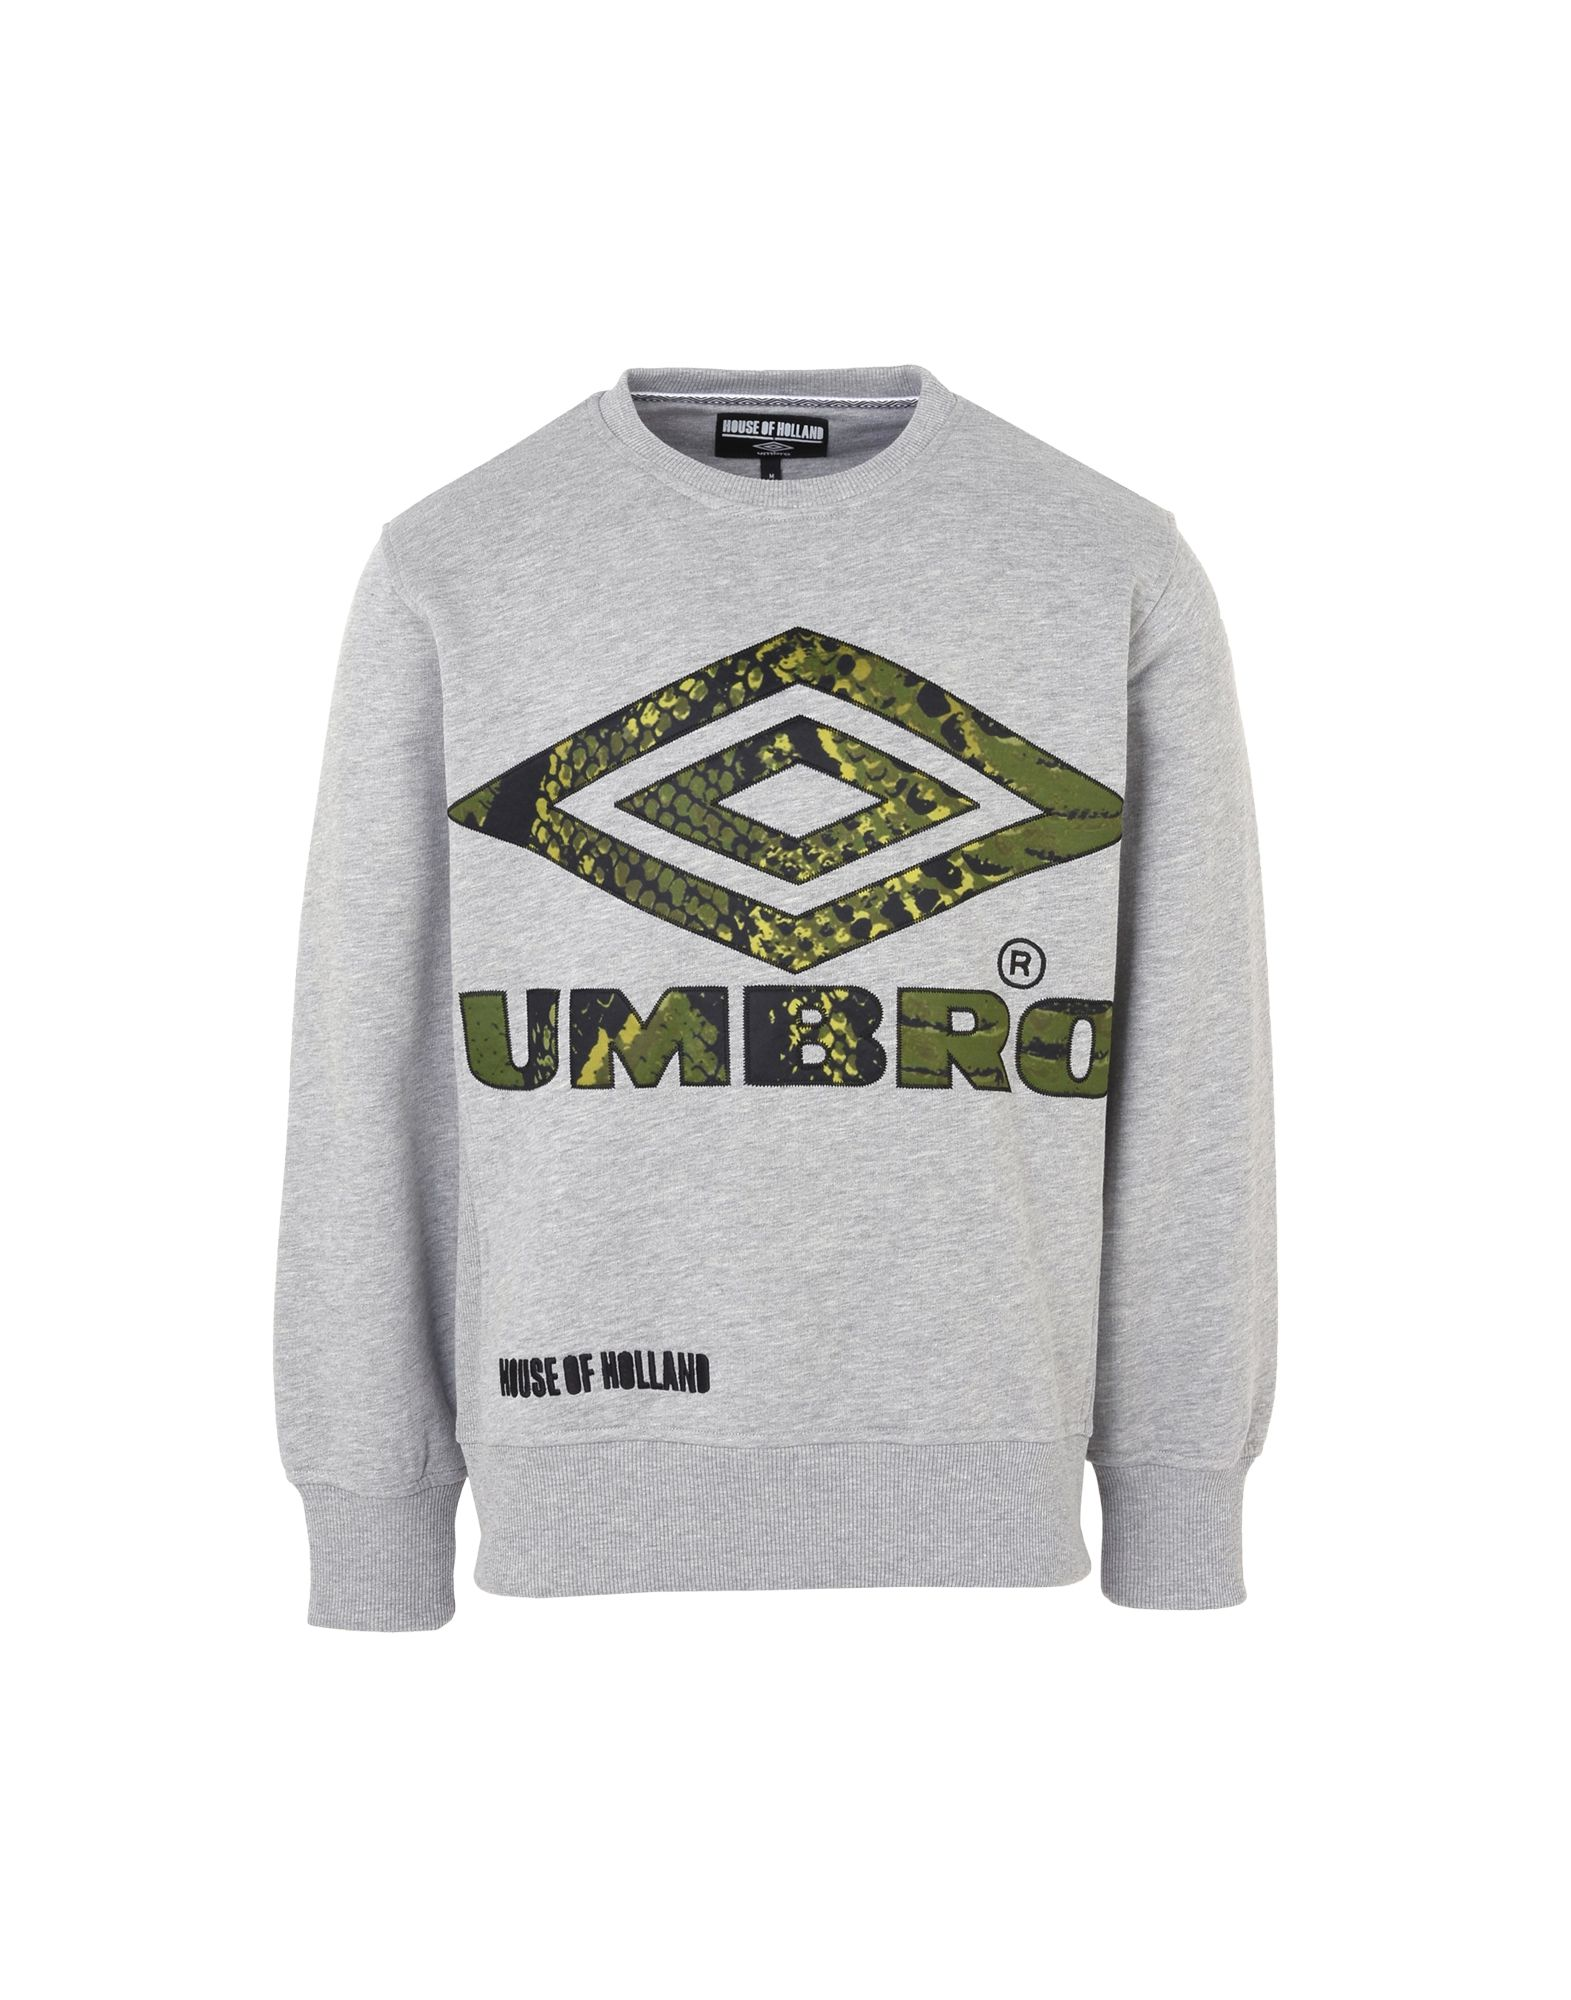 Фото UMBRO x HOUSE OF HOLLAND Толстовка umbro x house of holland толстовка